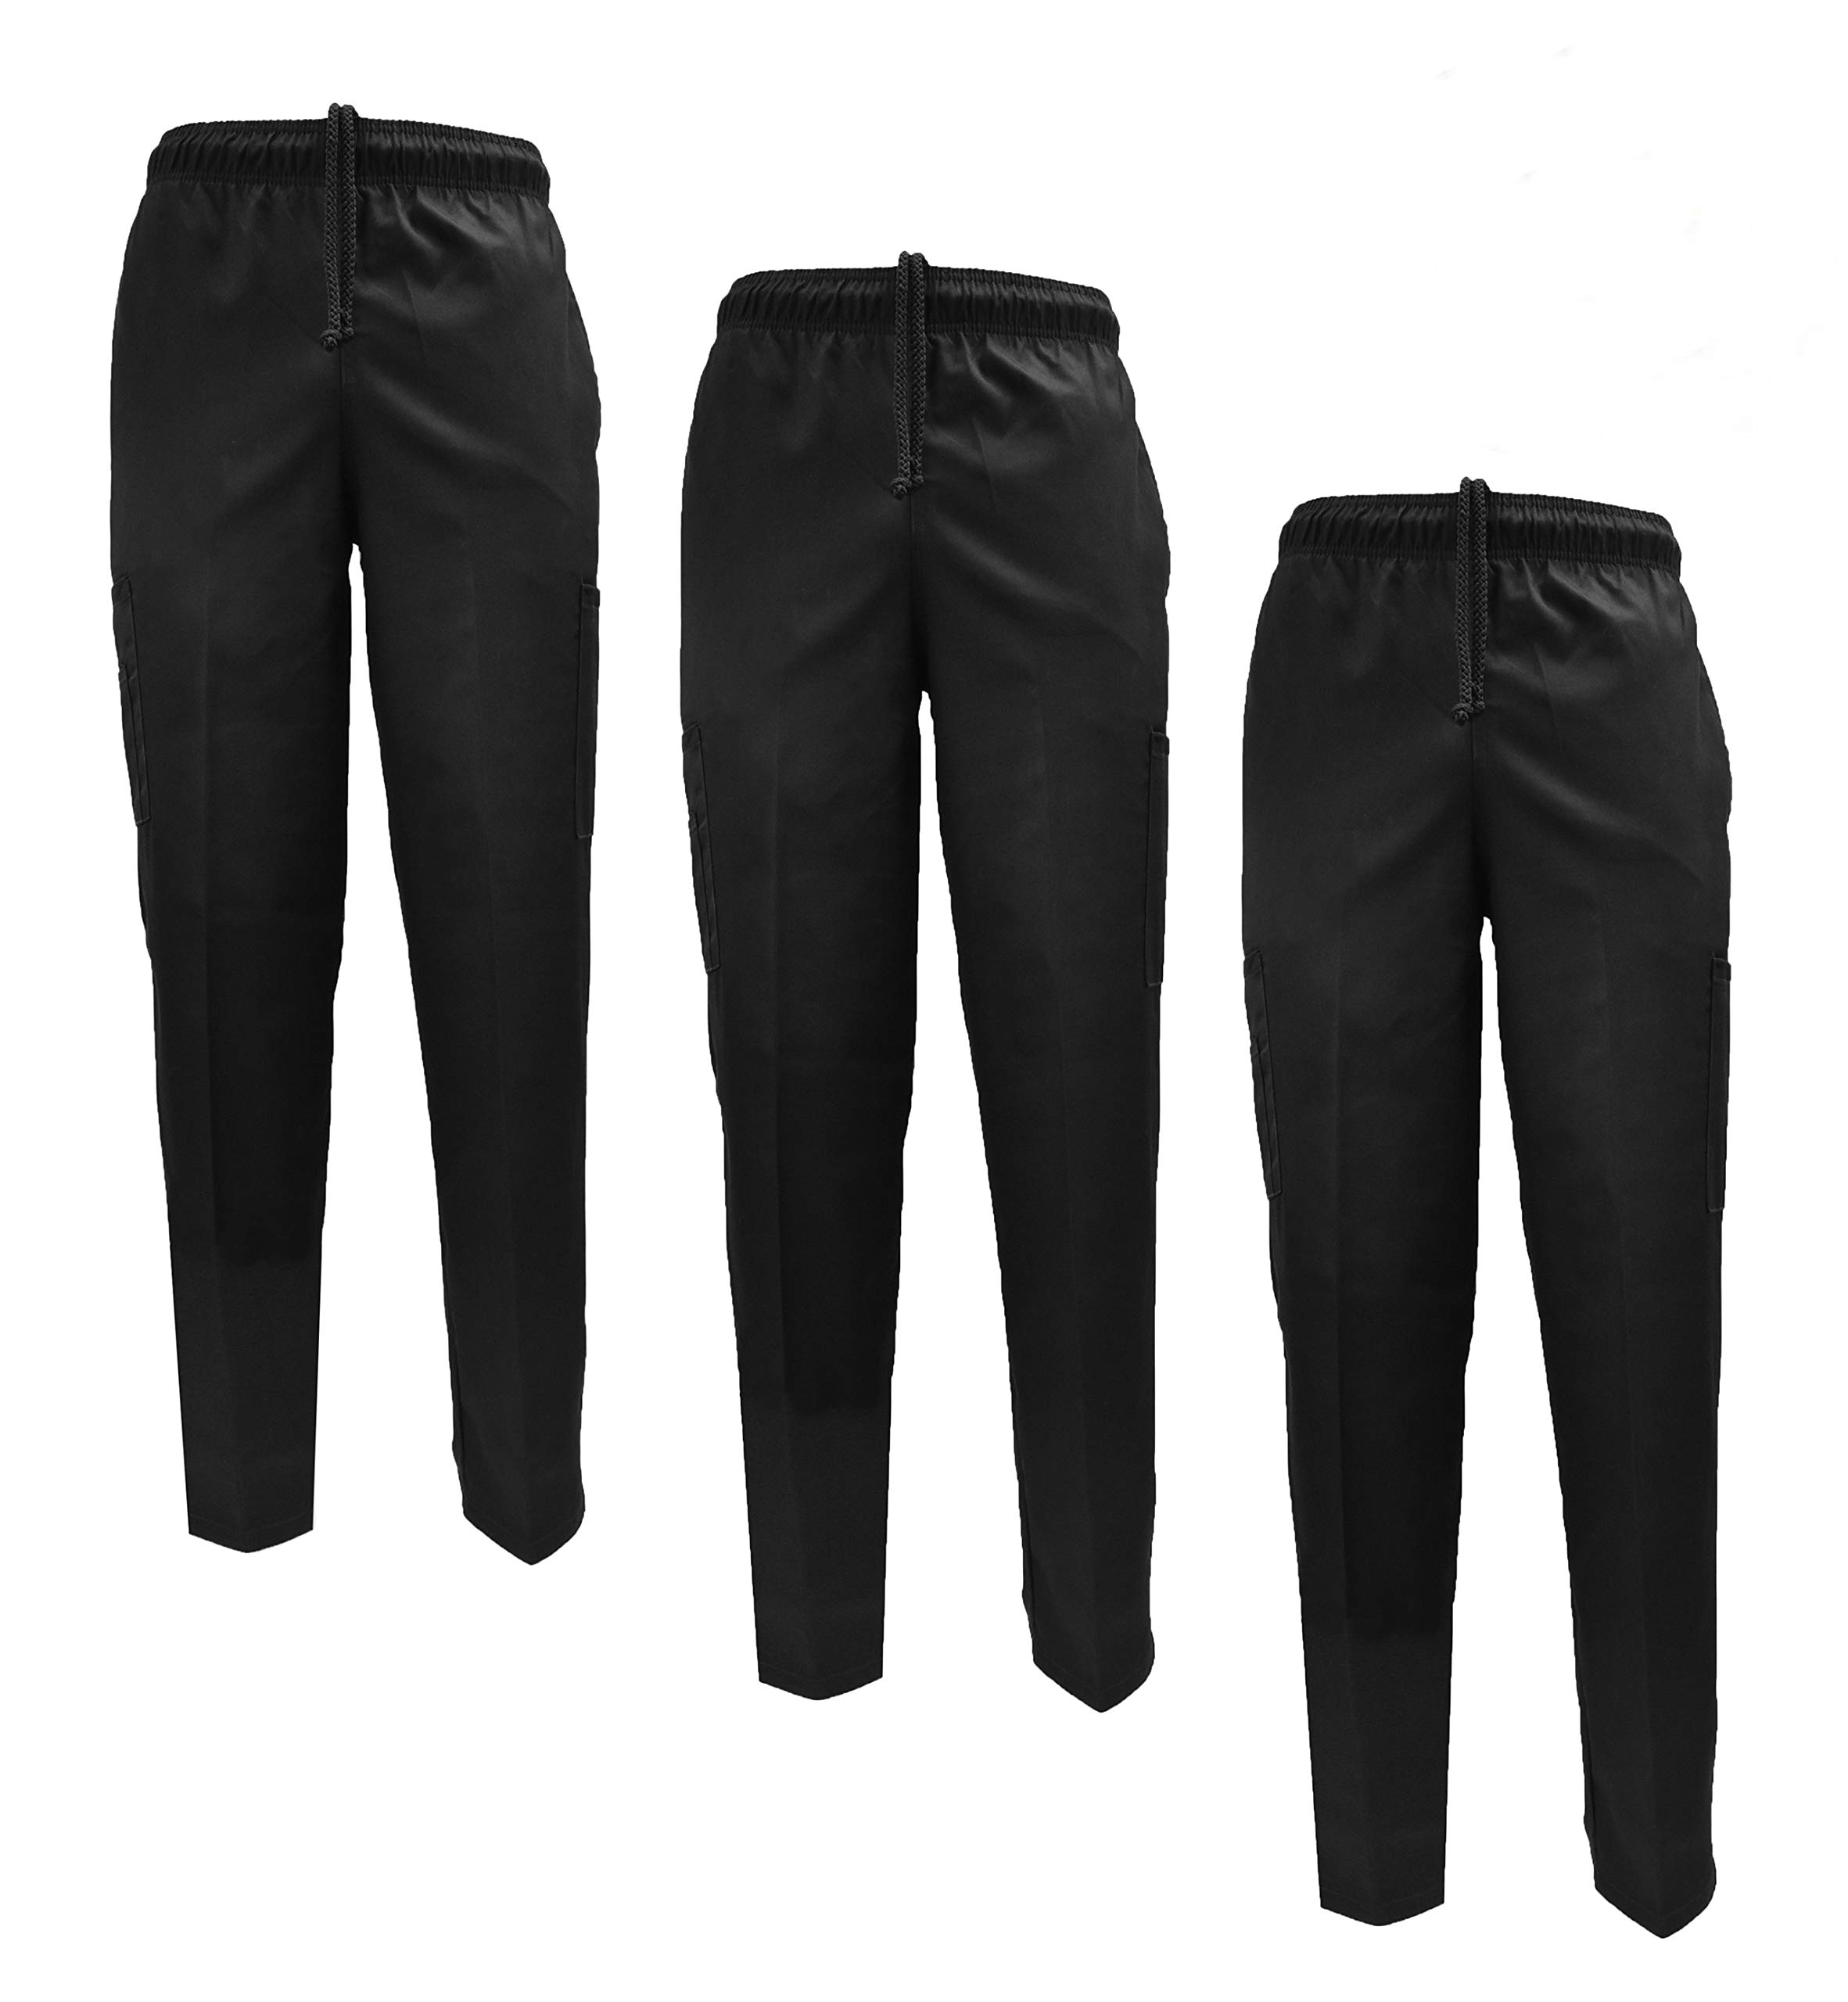 Natural Uniforms Classic Chef Pants (X-Large, Black Pack of 3) by Natural Uniforms